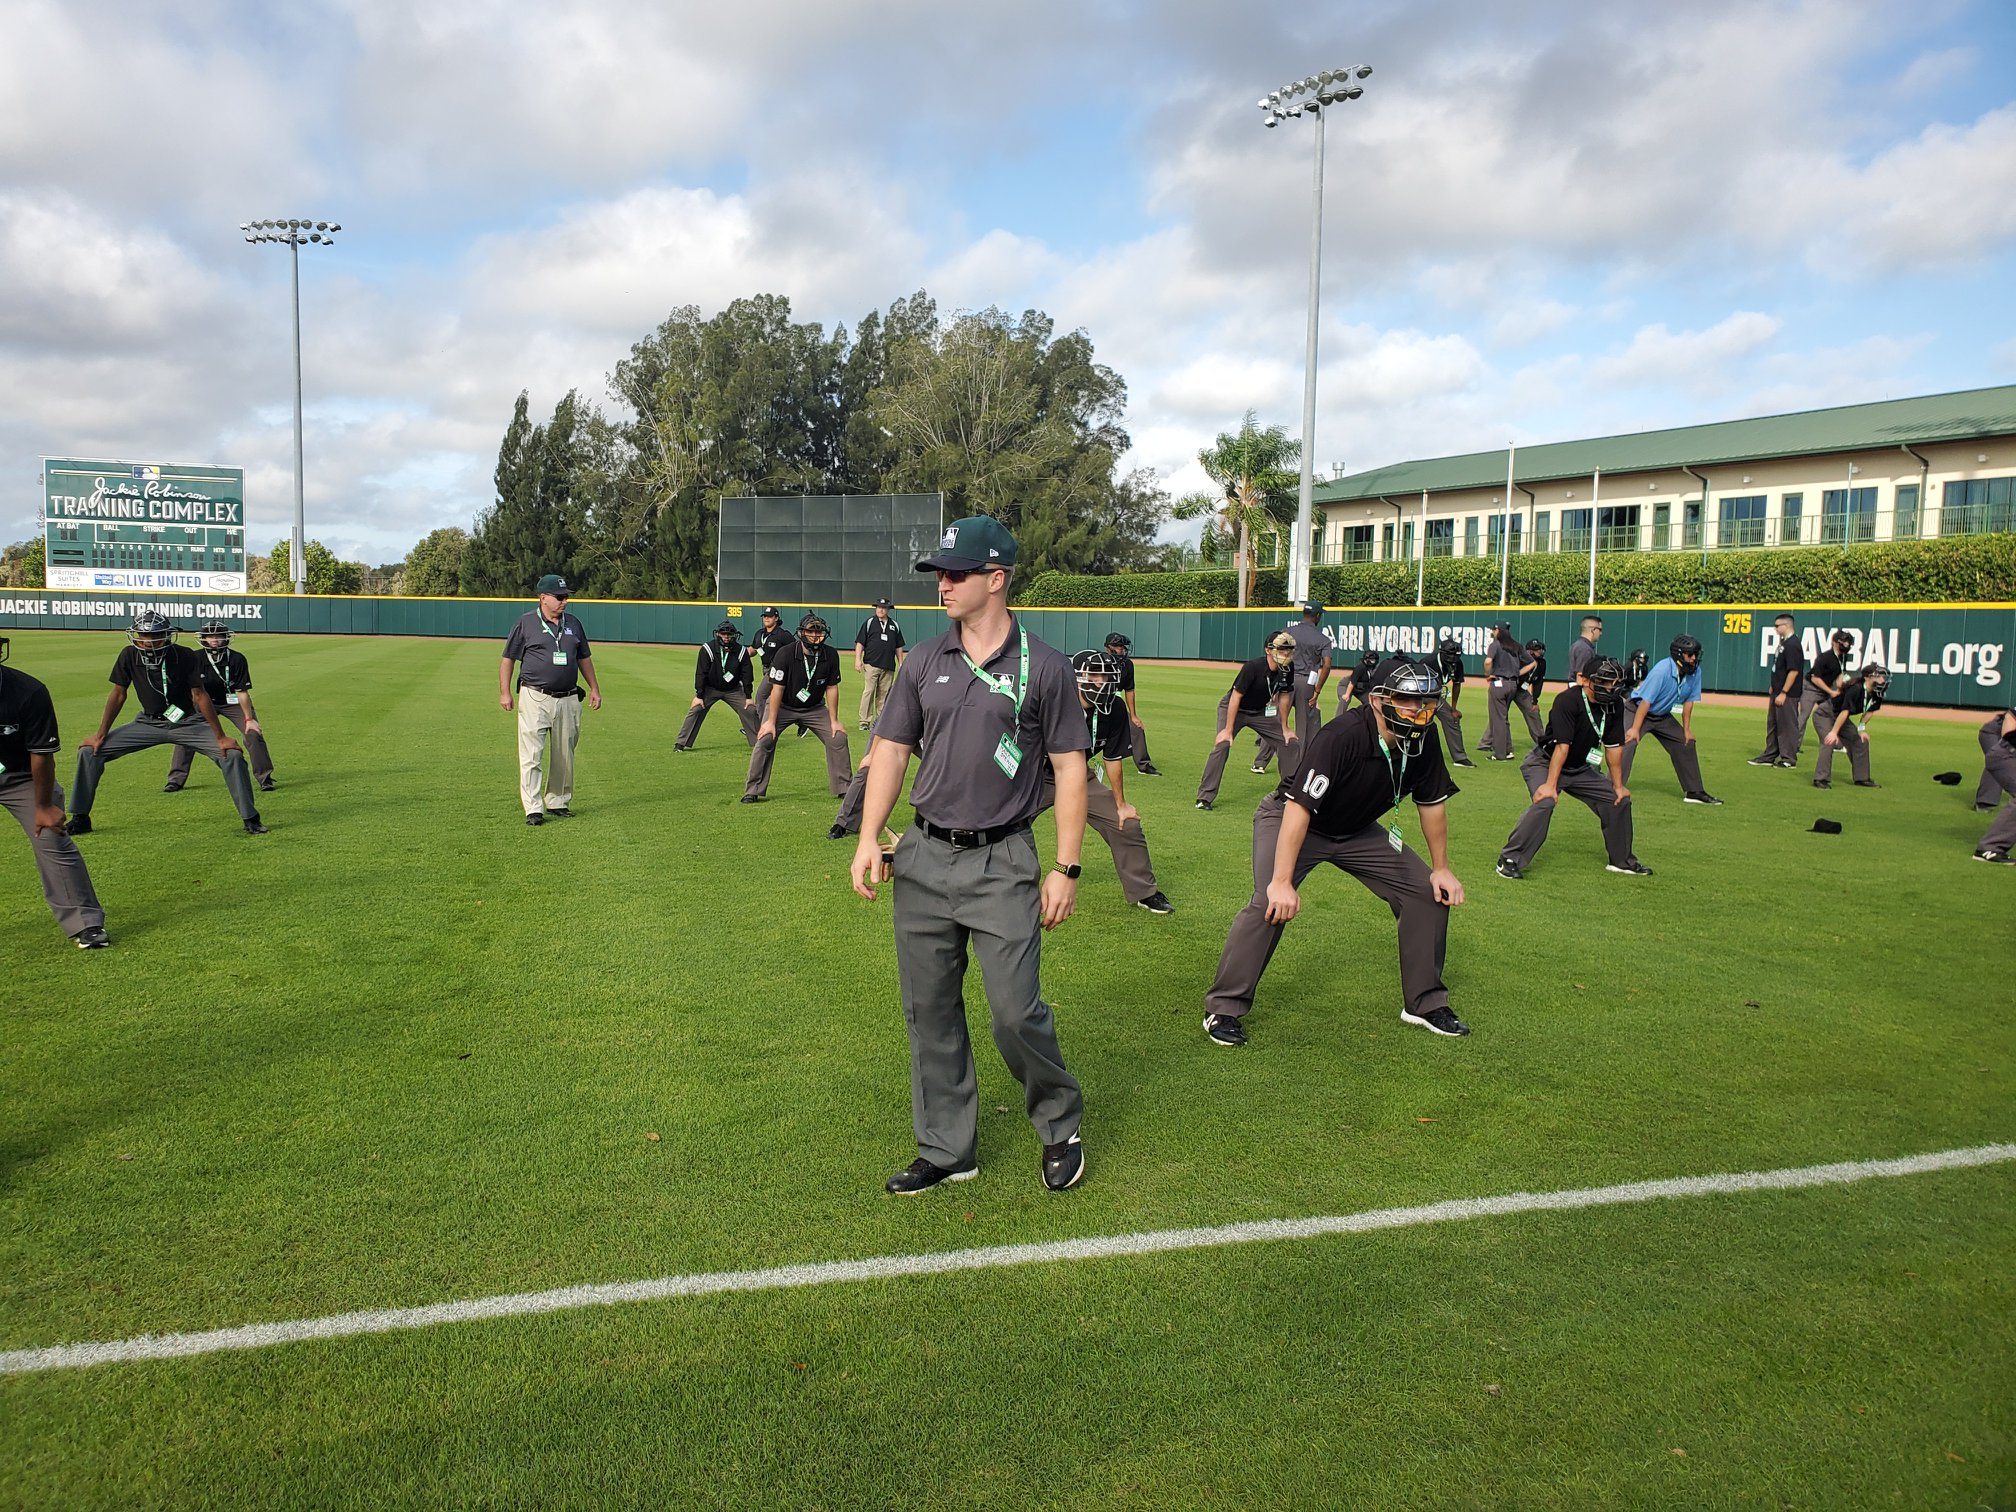 MLB Umpire Camps Training 8.0